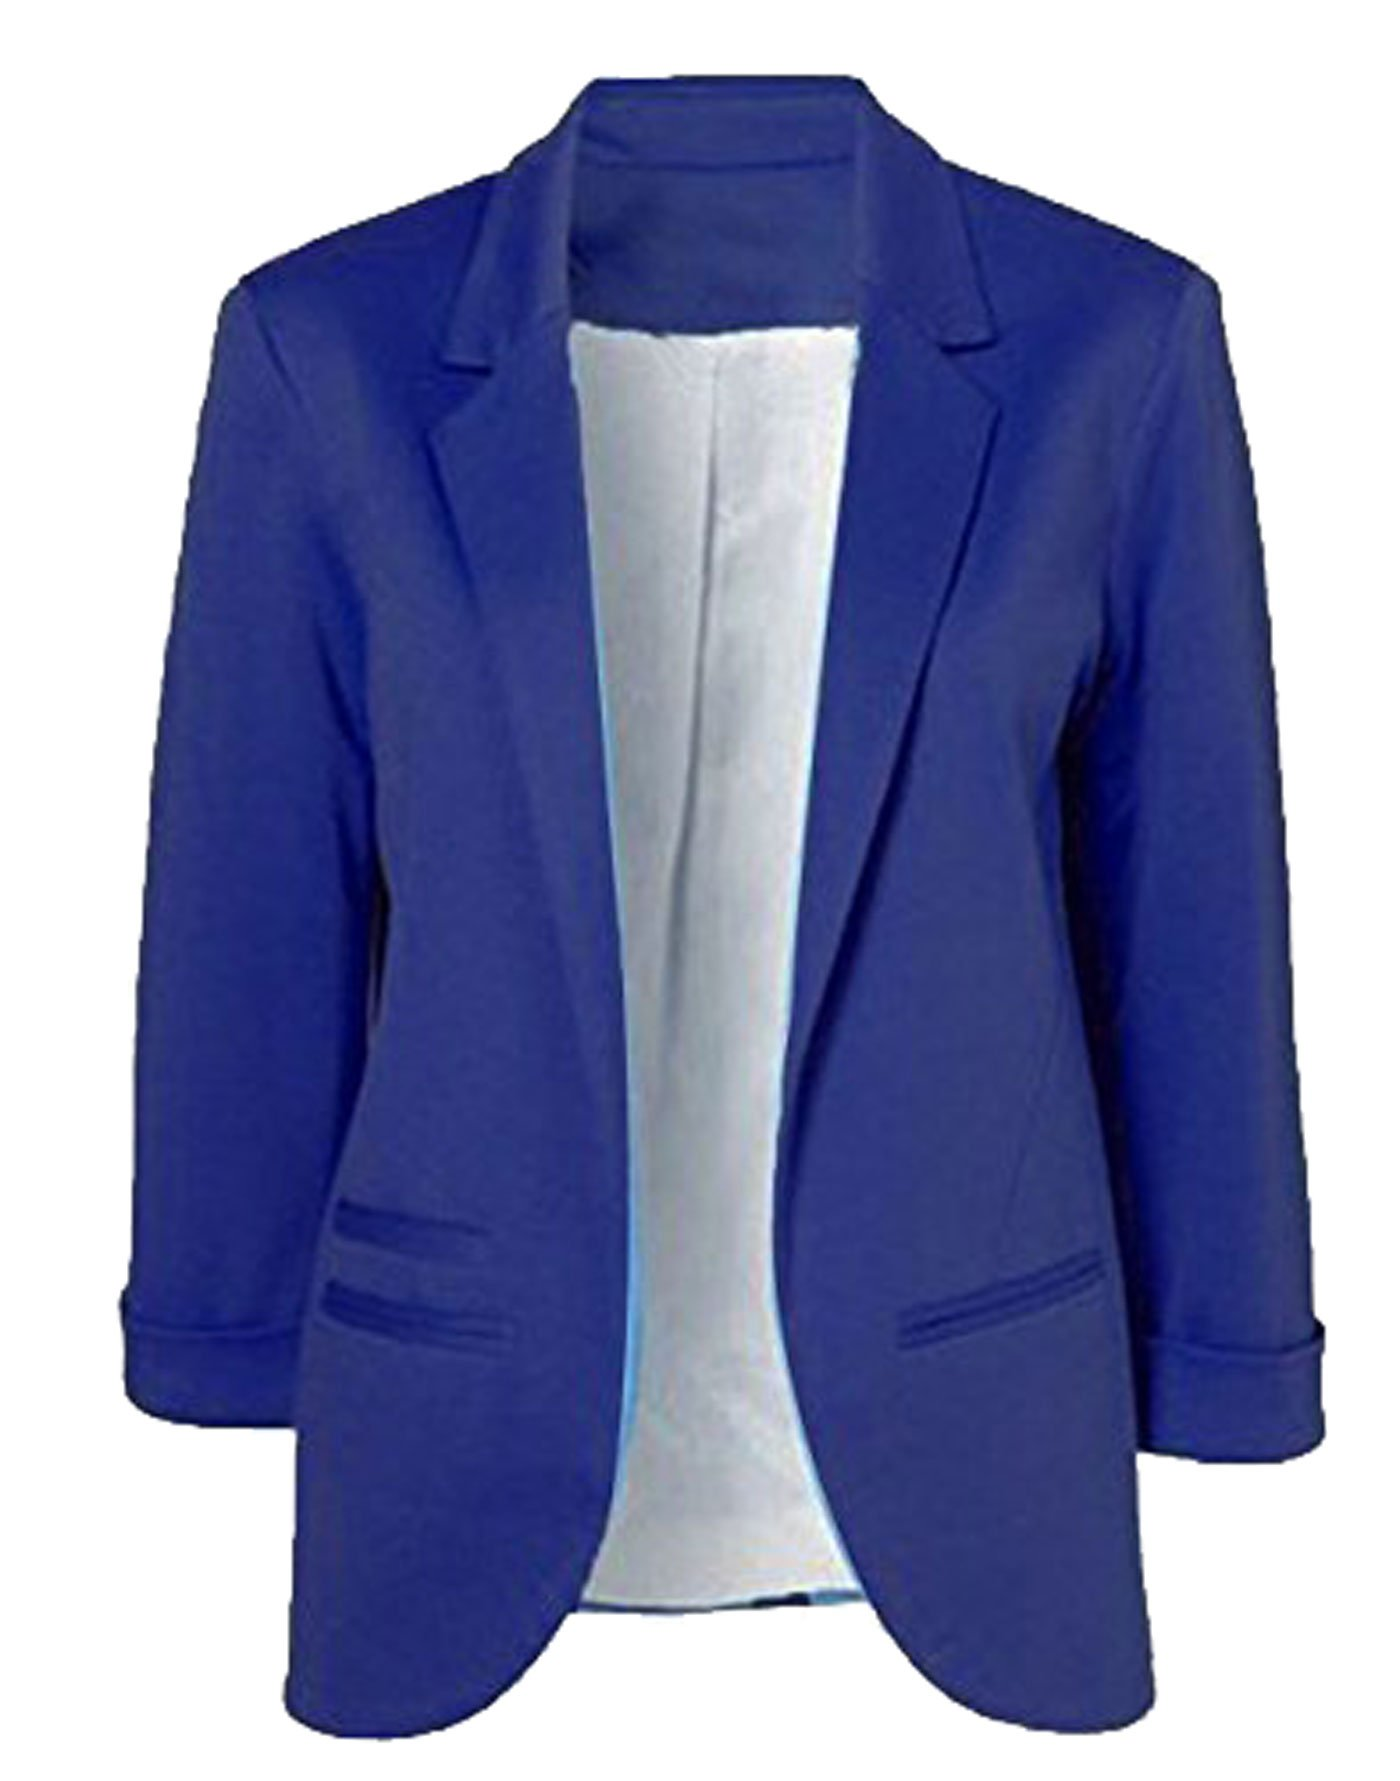 Face N Face Women's Cotton Rolled Up Sleeve No-Buckle Blazer Jacket Suits Large Blue